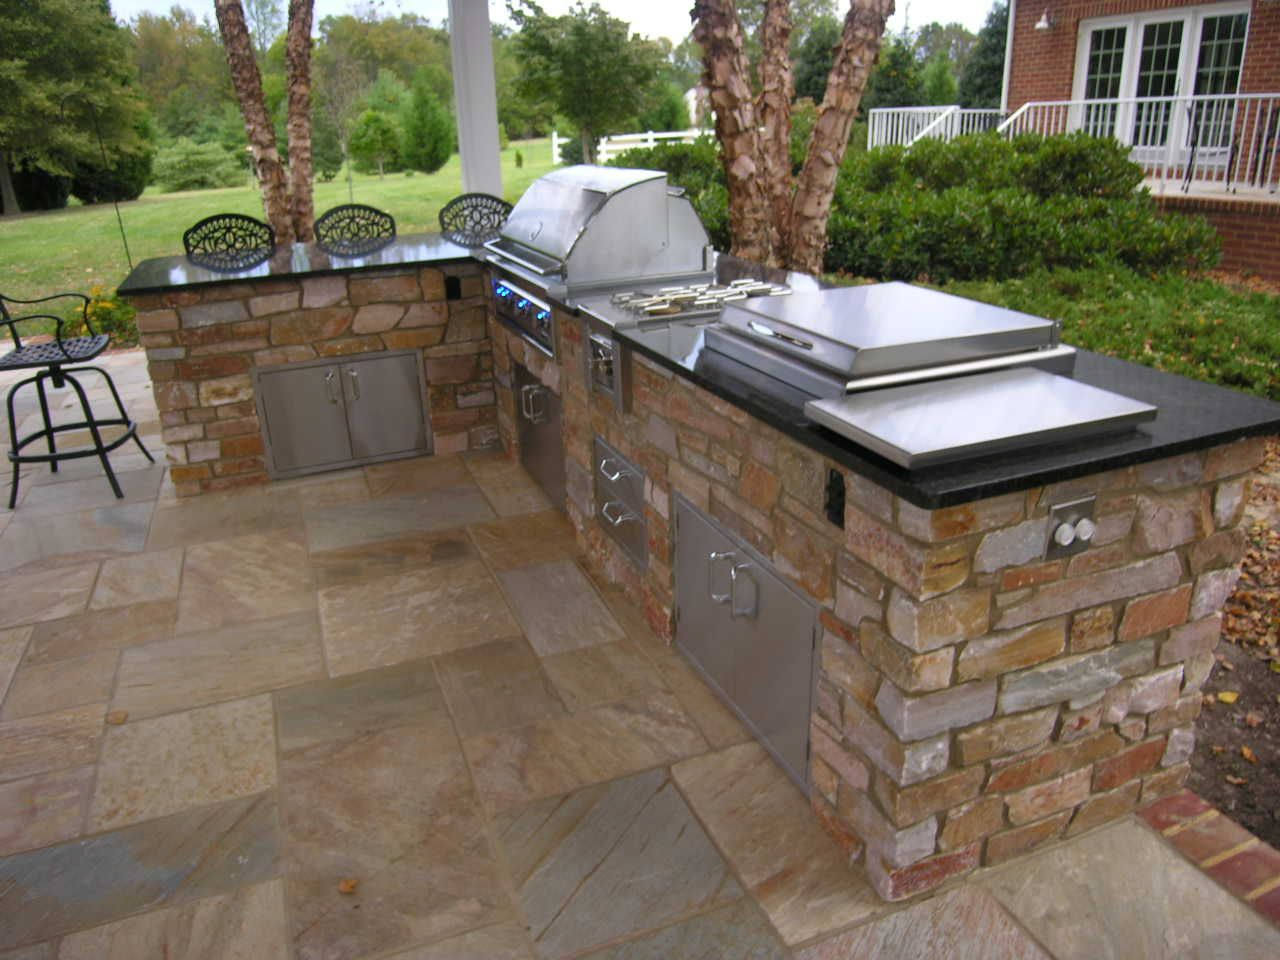 Outdoor kitchen, a must!